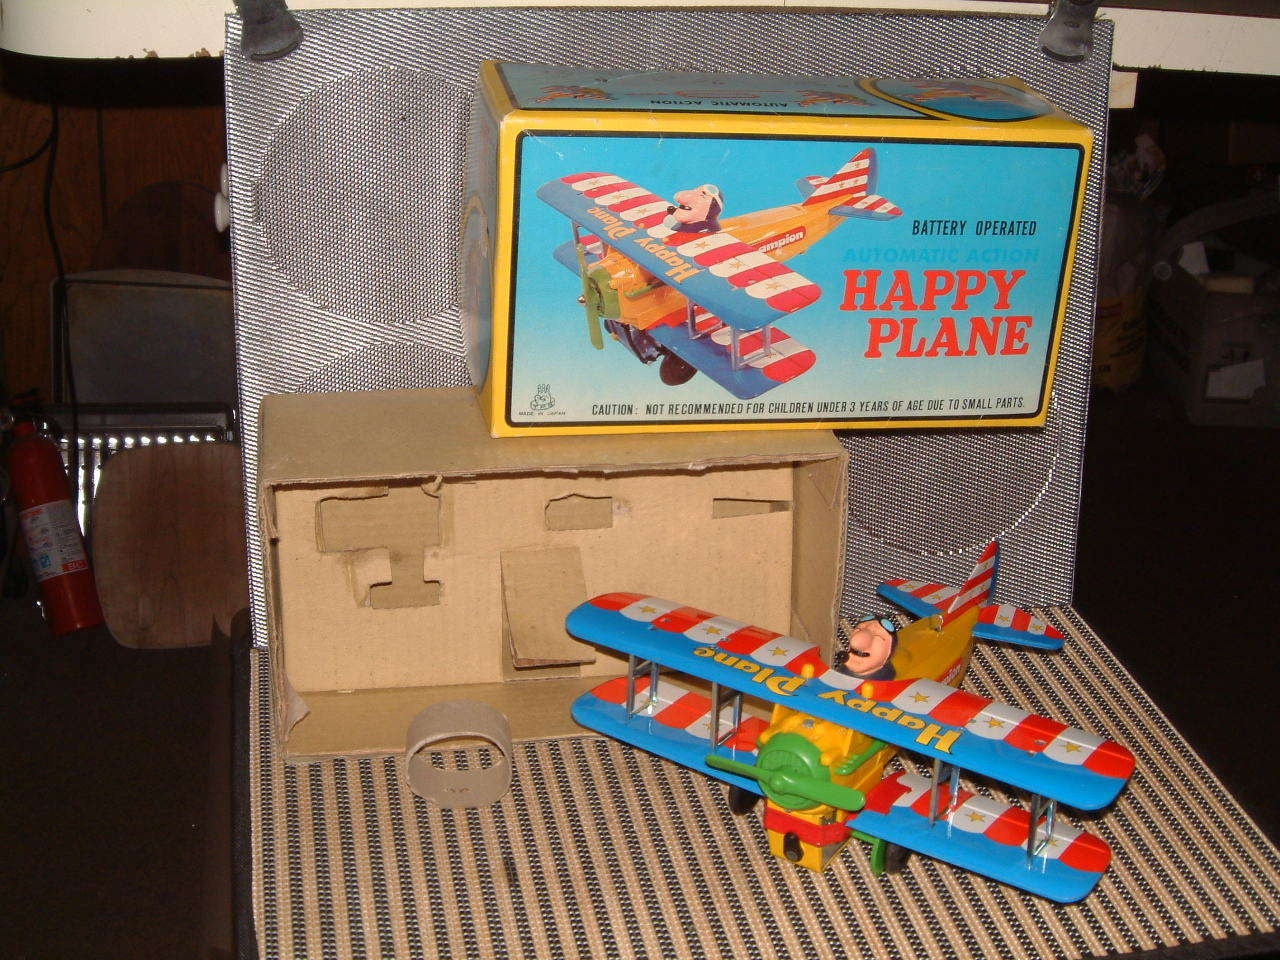 TPS VINTAGE BATTERY BATTERY BATTERY OPERATED HAPPY PLANE PERFECTLY WORKING W ORIGINAL BOX T.P.S. f028ea